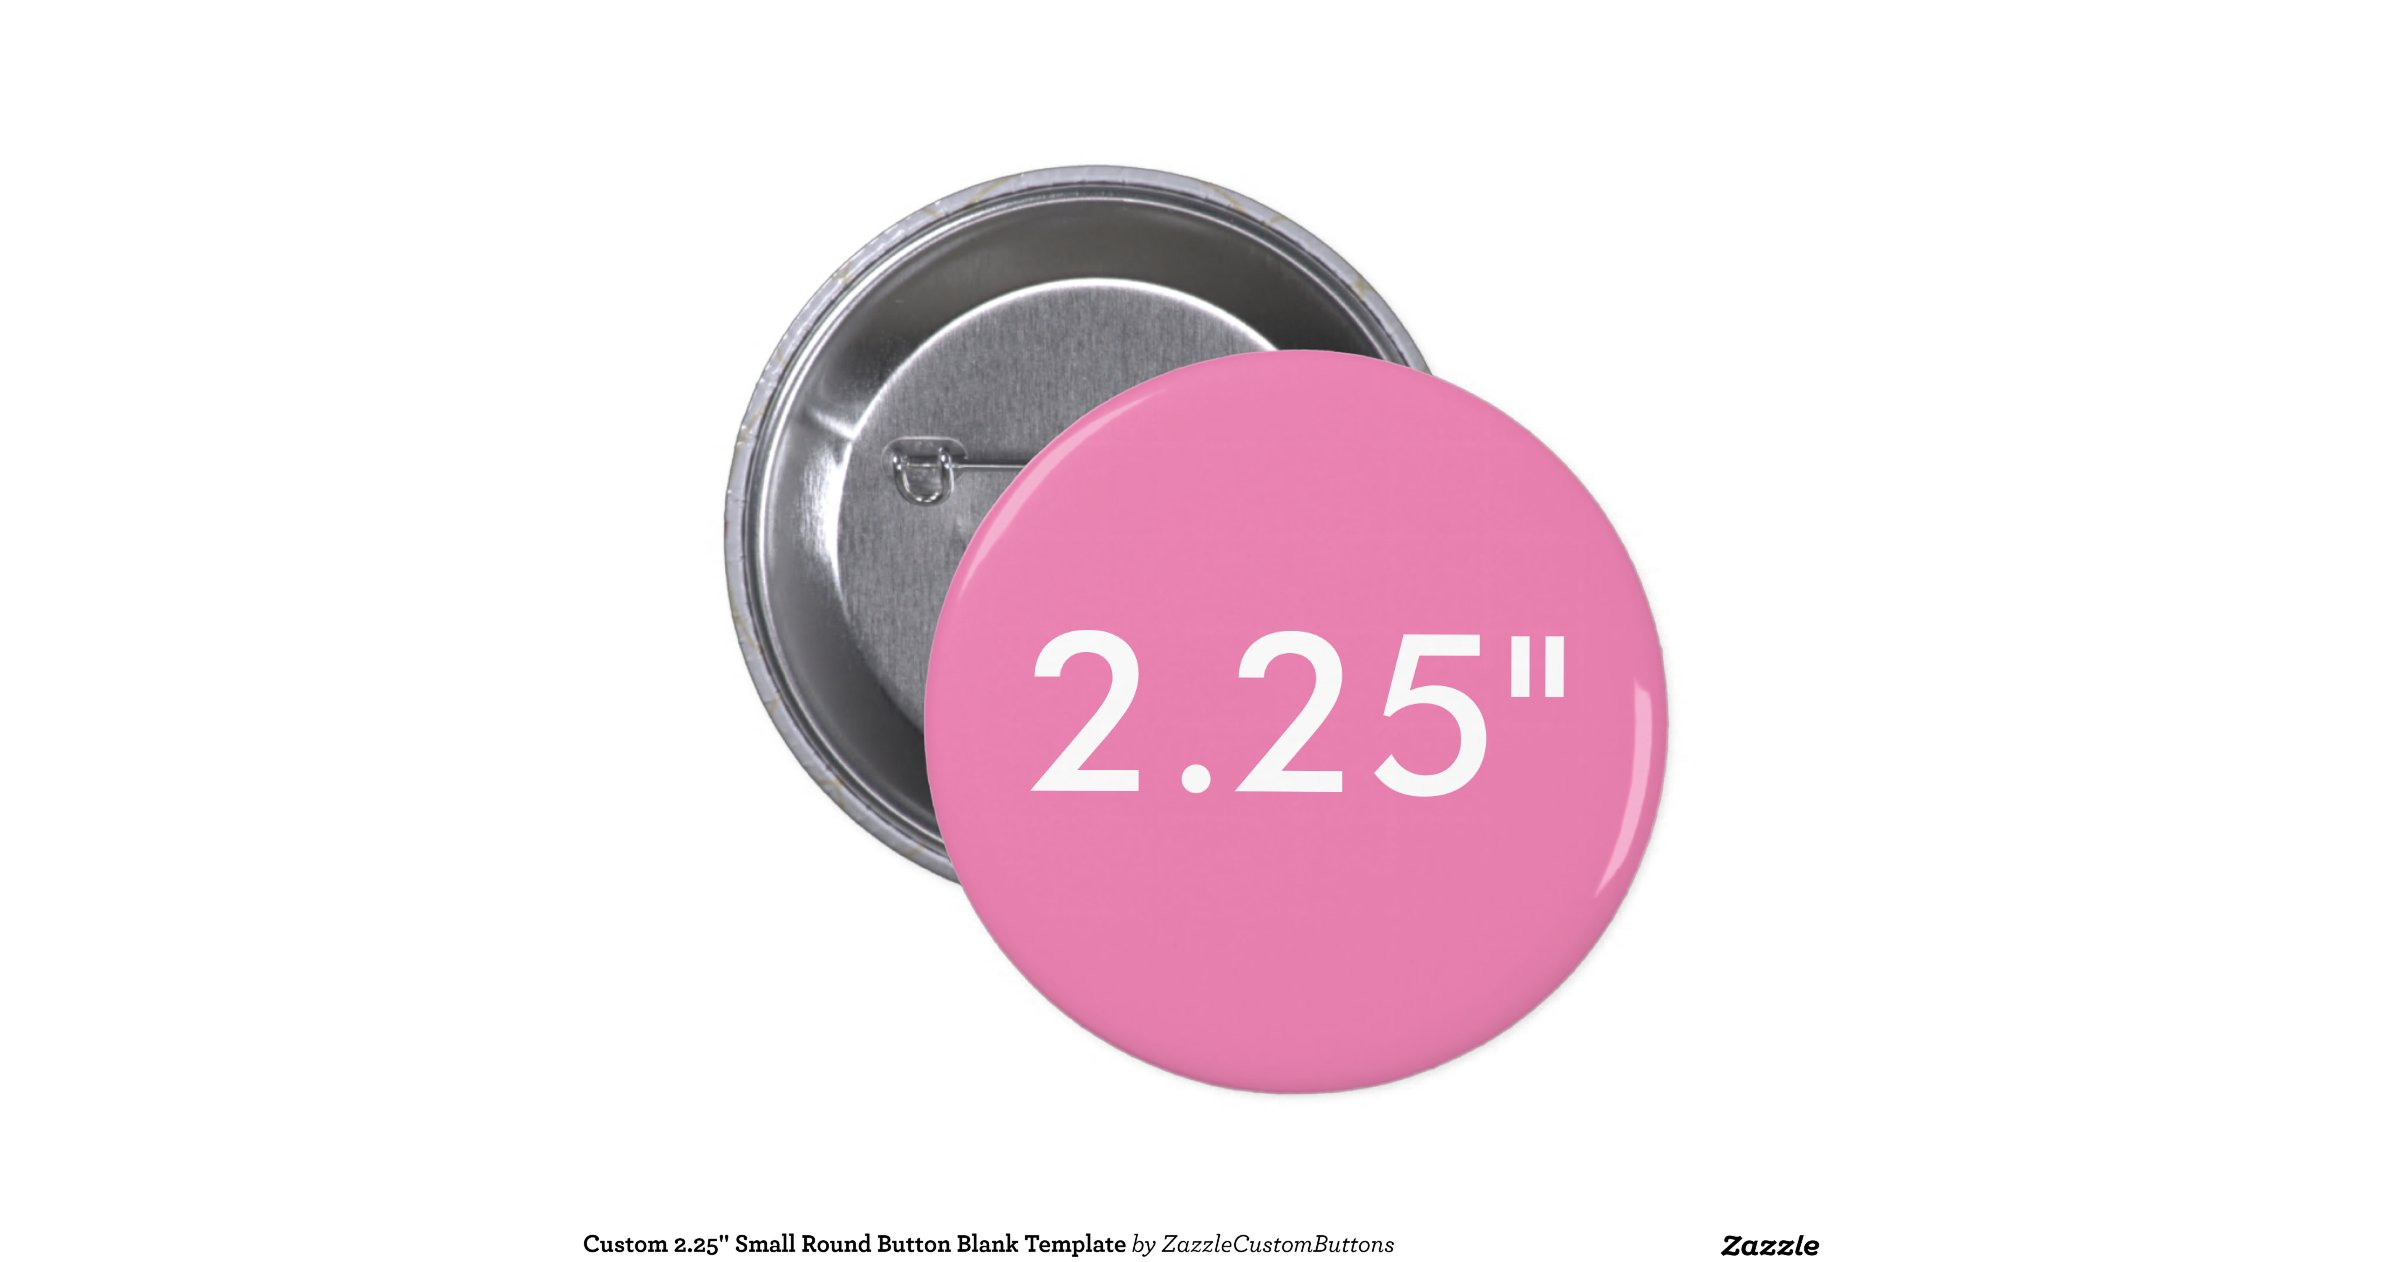 custom small round button blank template zazzle. Black Bedroom Furniture Sets. Home Design Ideas